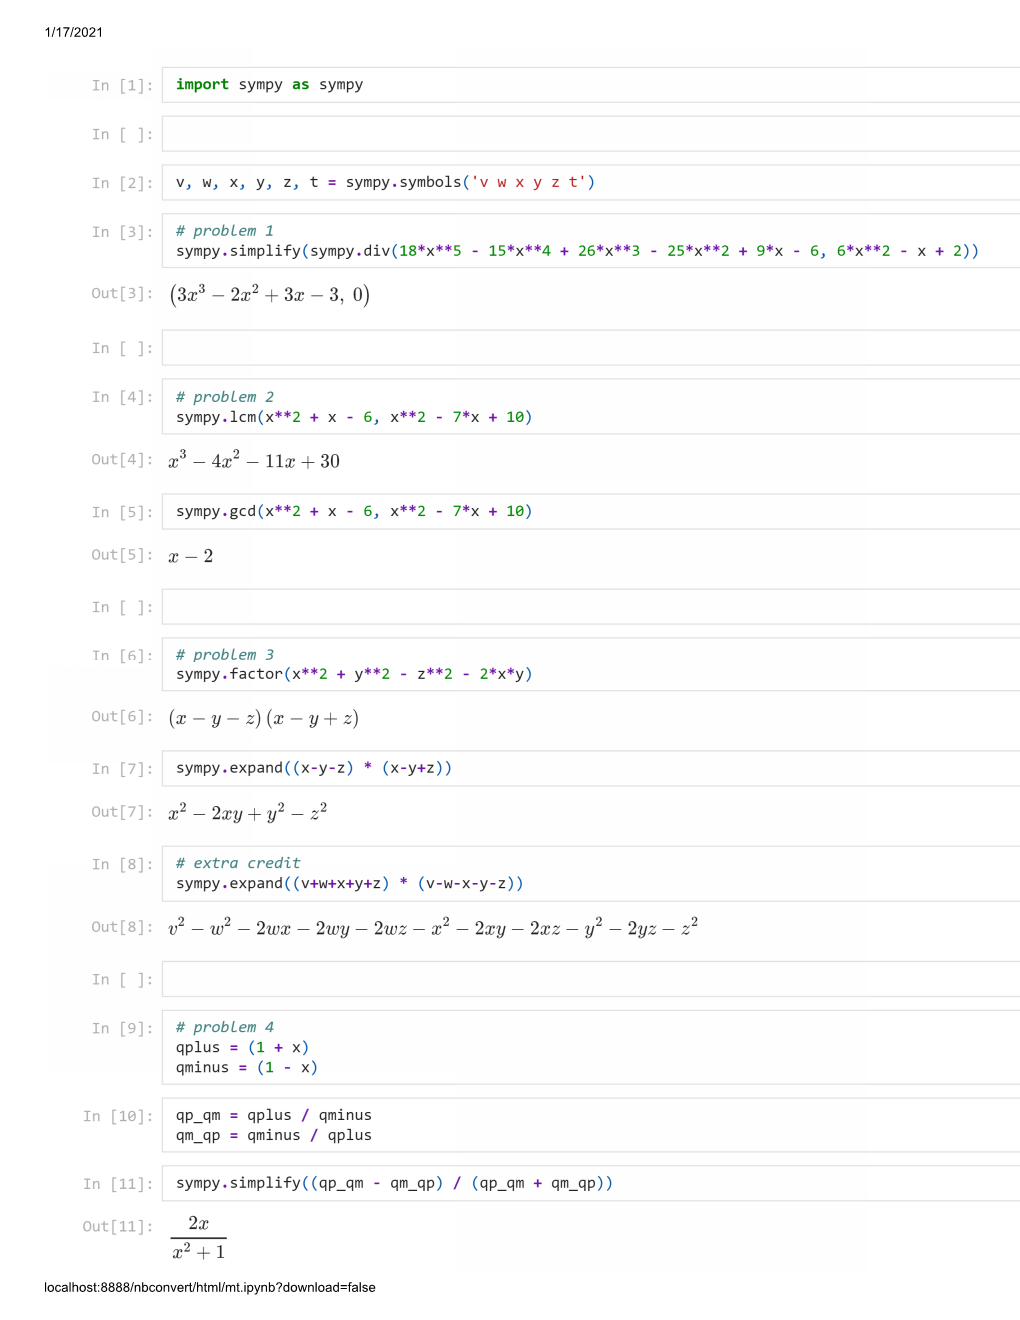 Jupyter notebook -- page 1 of 2